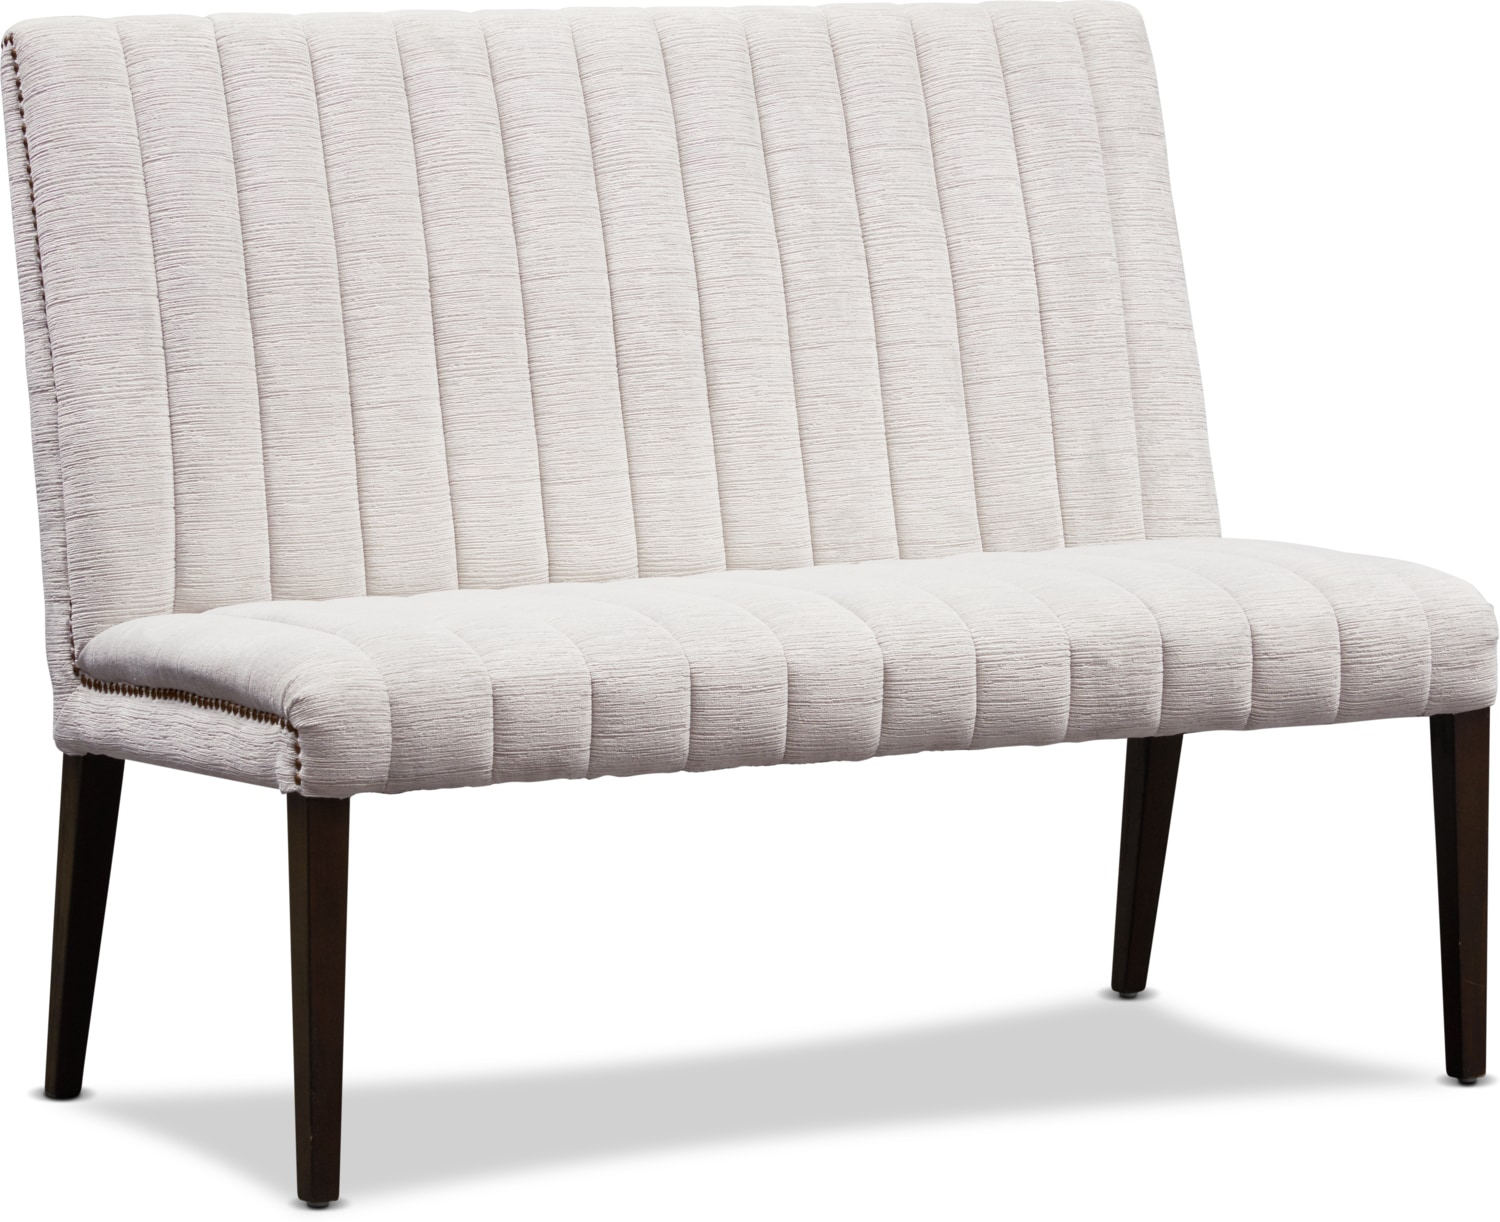 Dining Room Furniture - Artemis Bench